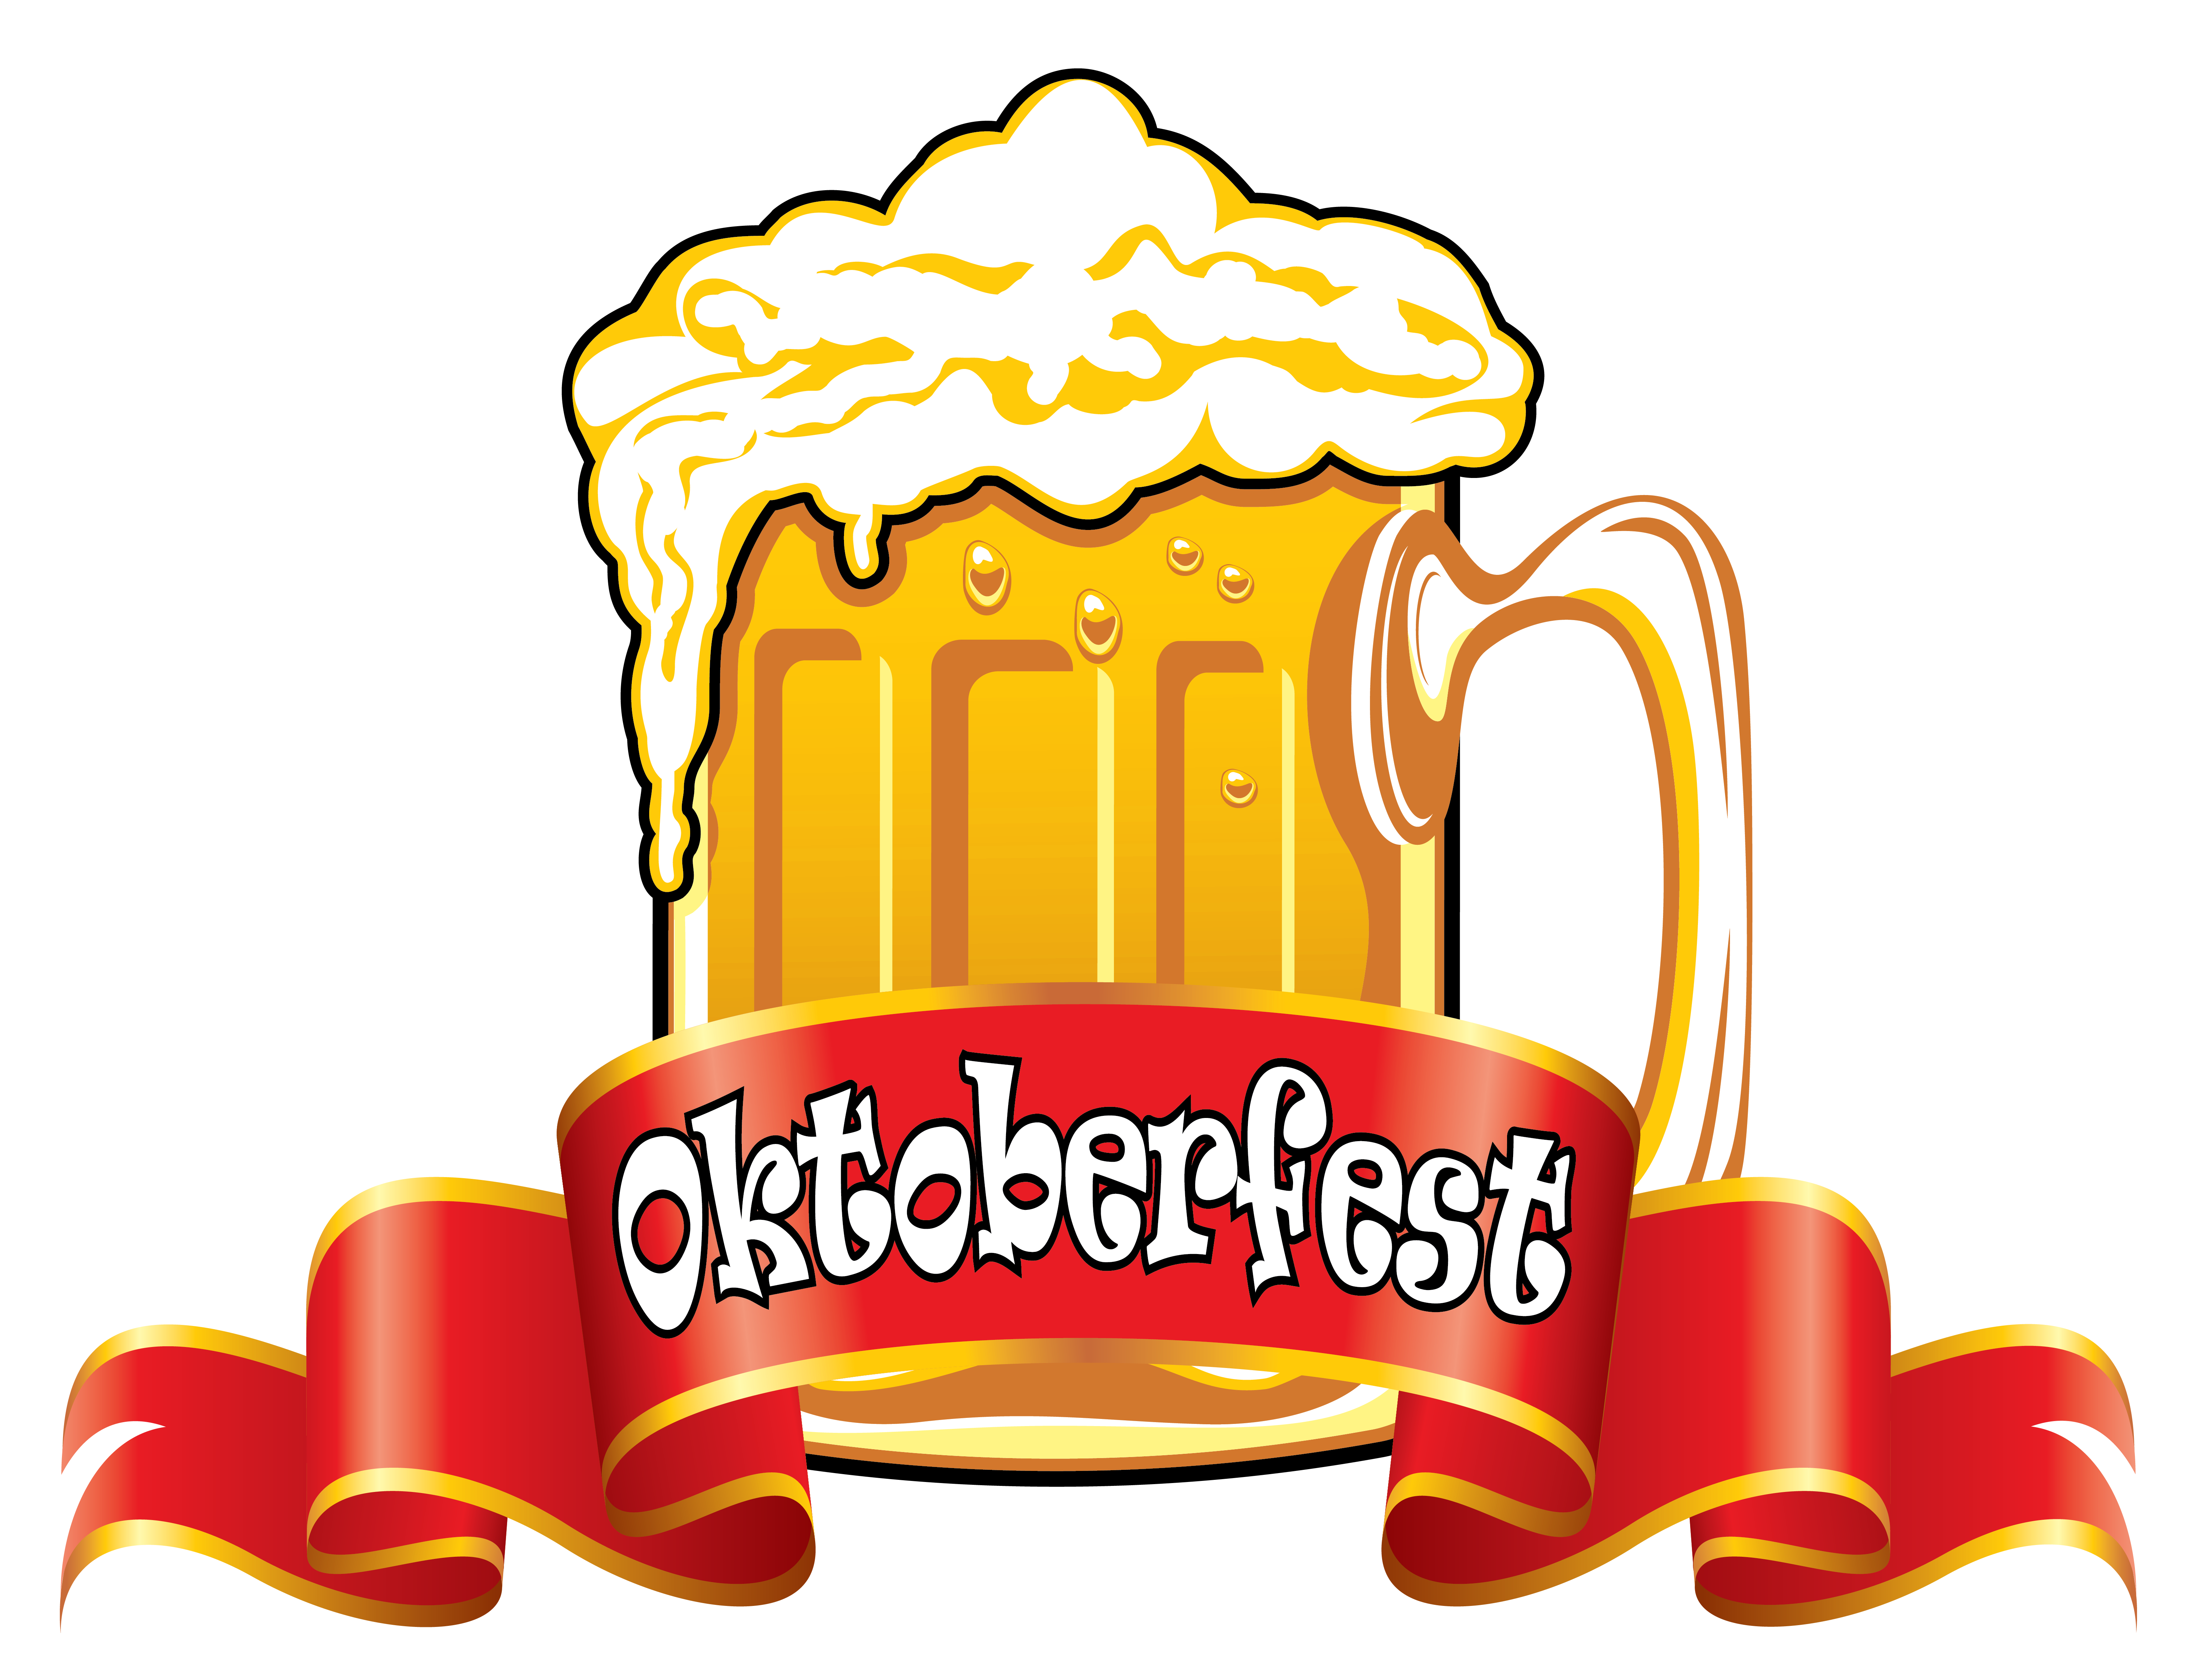 Oktoberfest clipart png jpg stock Oktoberfest Red Banner with Beer PNG Clipart Image | Gallery ... jpg stock